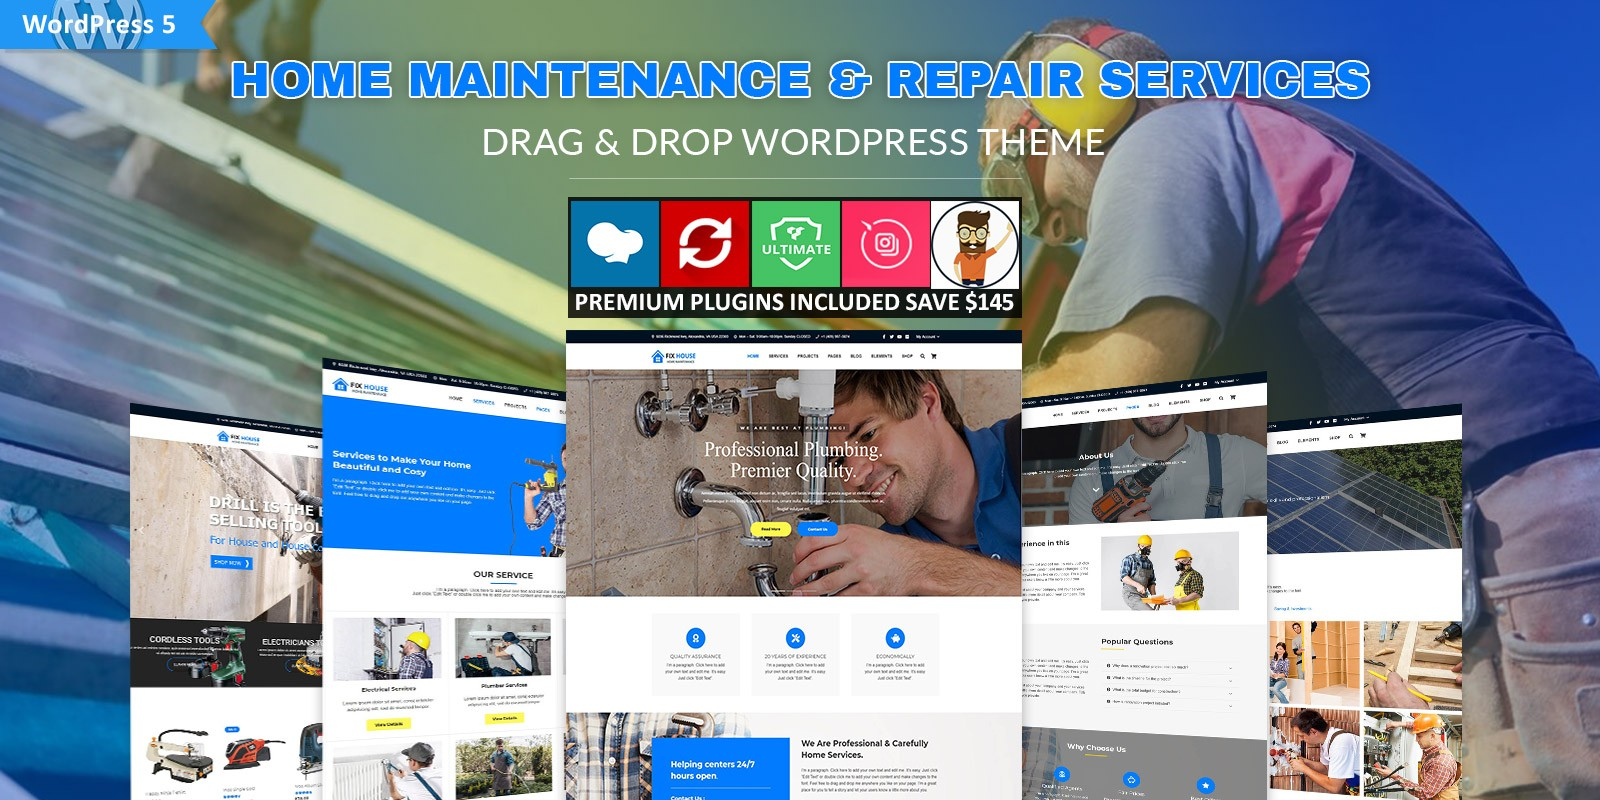 FixHouse - Repair Services WordPress Theme